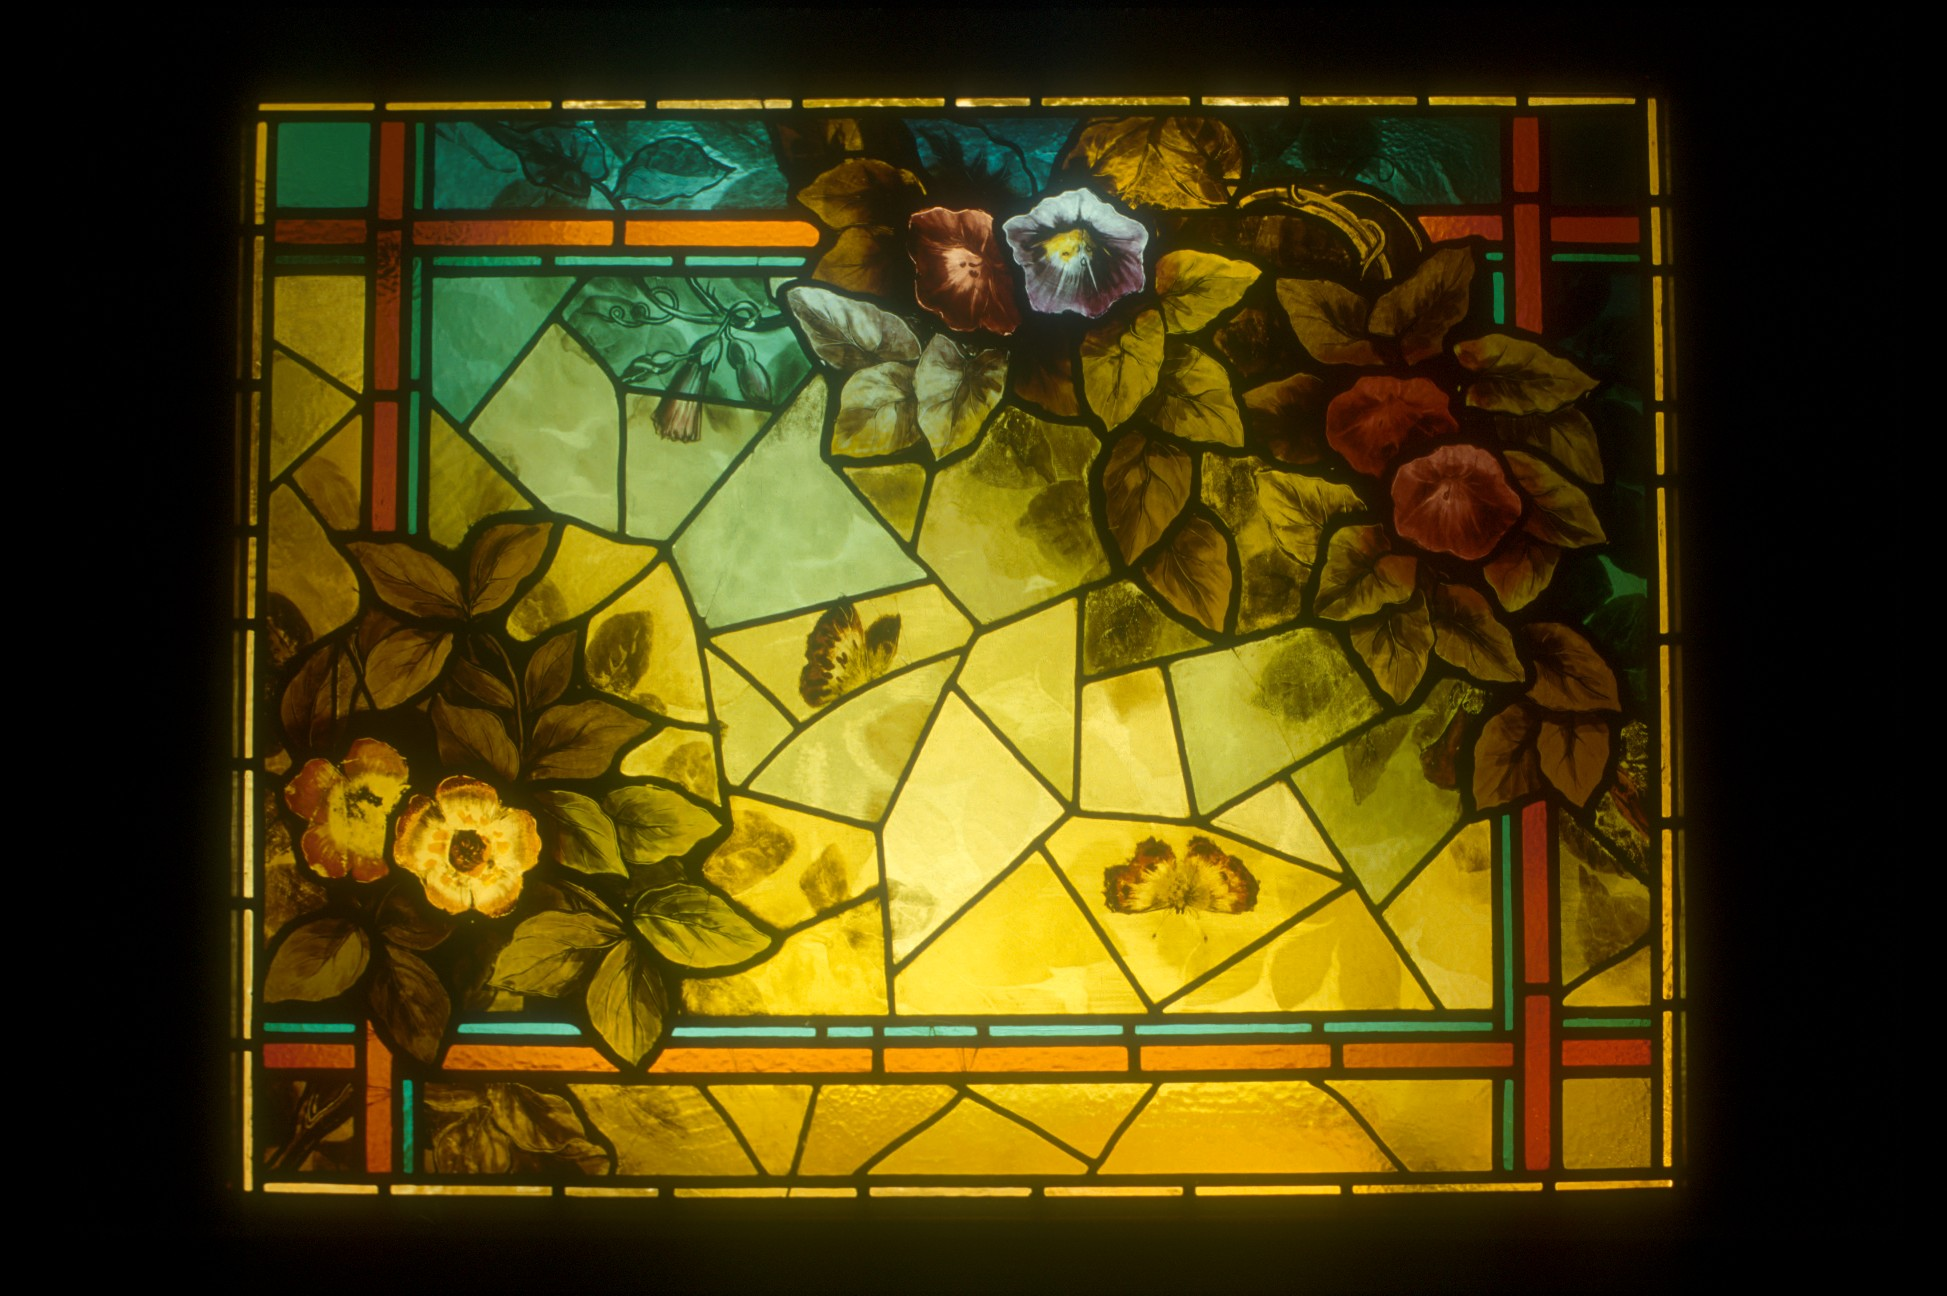 Morning Glory Window  Residential Chapel Glen Echo Maryland  circa 1880 - Restoration